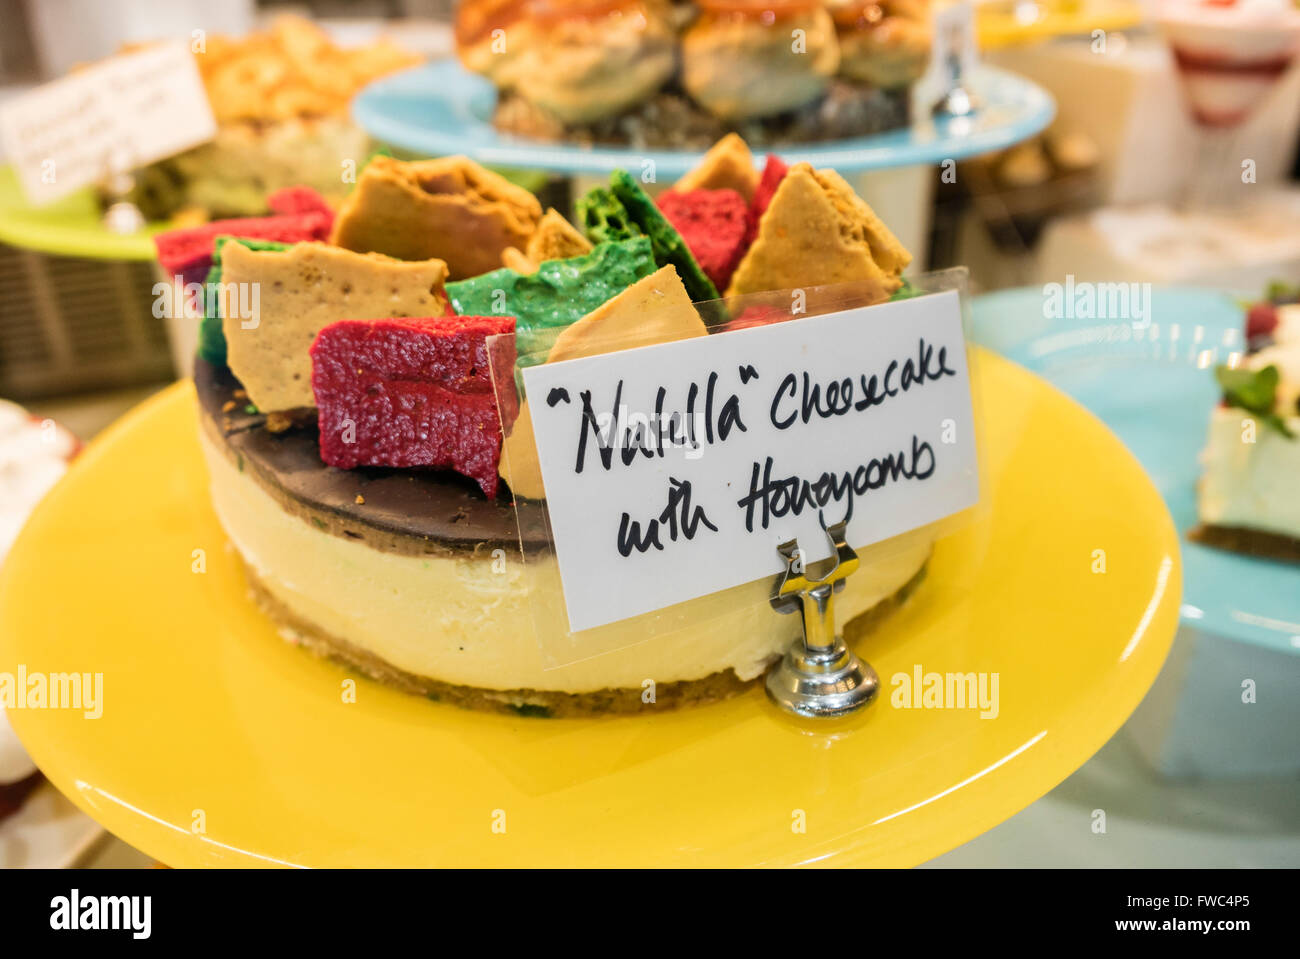 Nutella cheesecake with honeycomb dessert on display in a restaurant - Stock Image